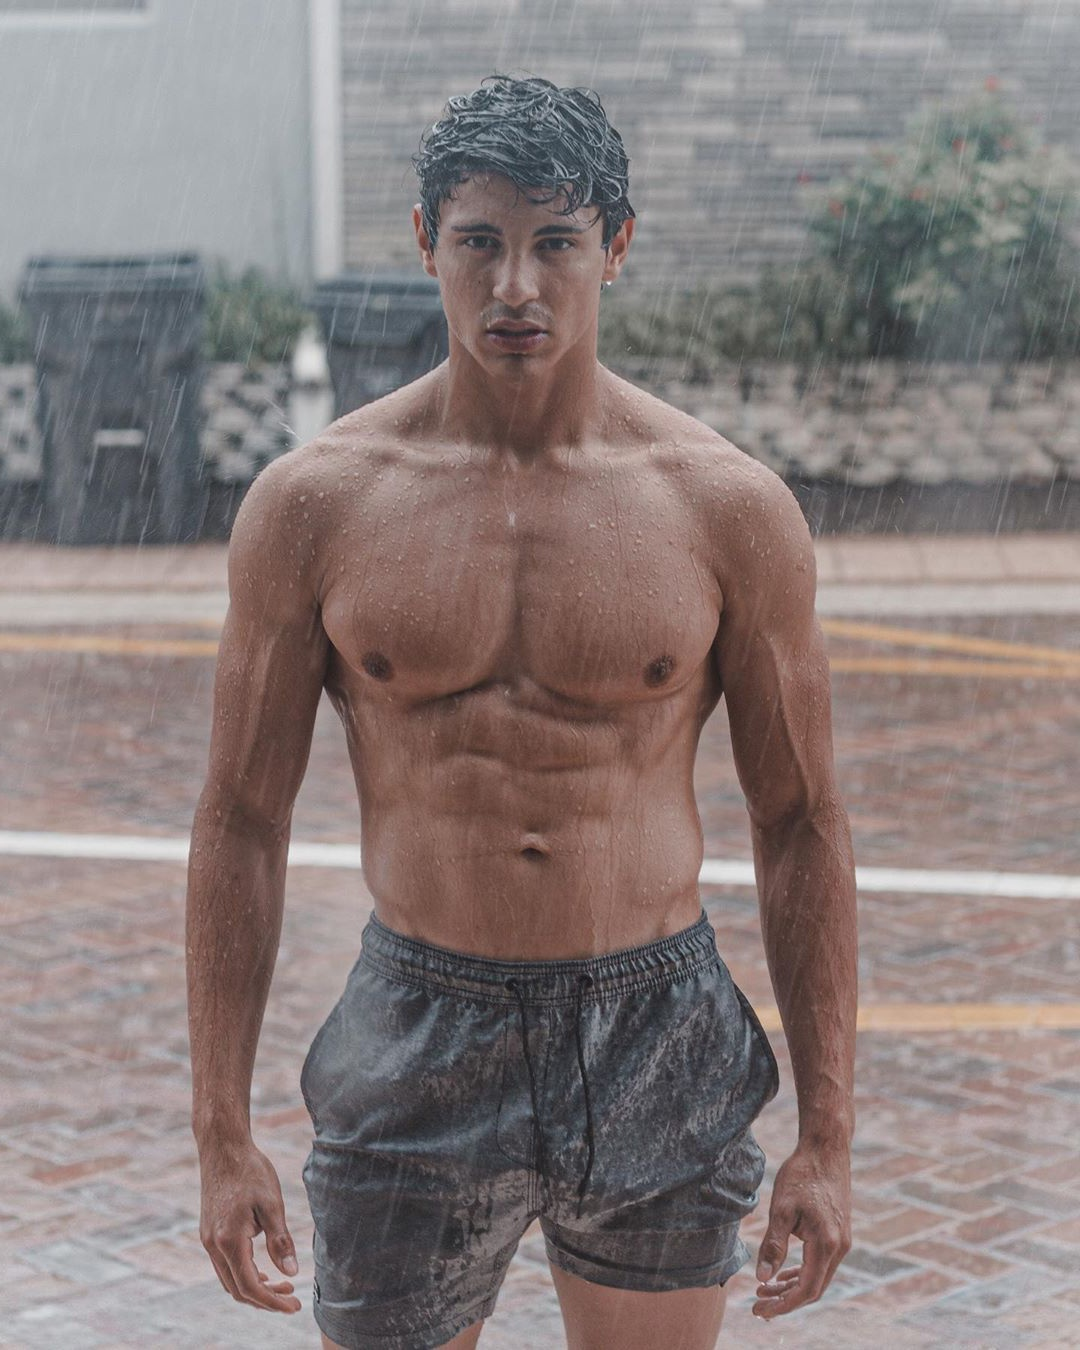 cute-fit-shirtless-wet-guy-raining-outdoor-mysterious-young-hunk